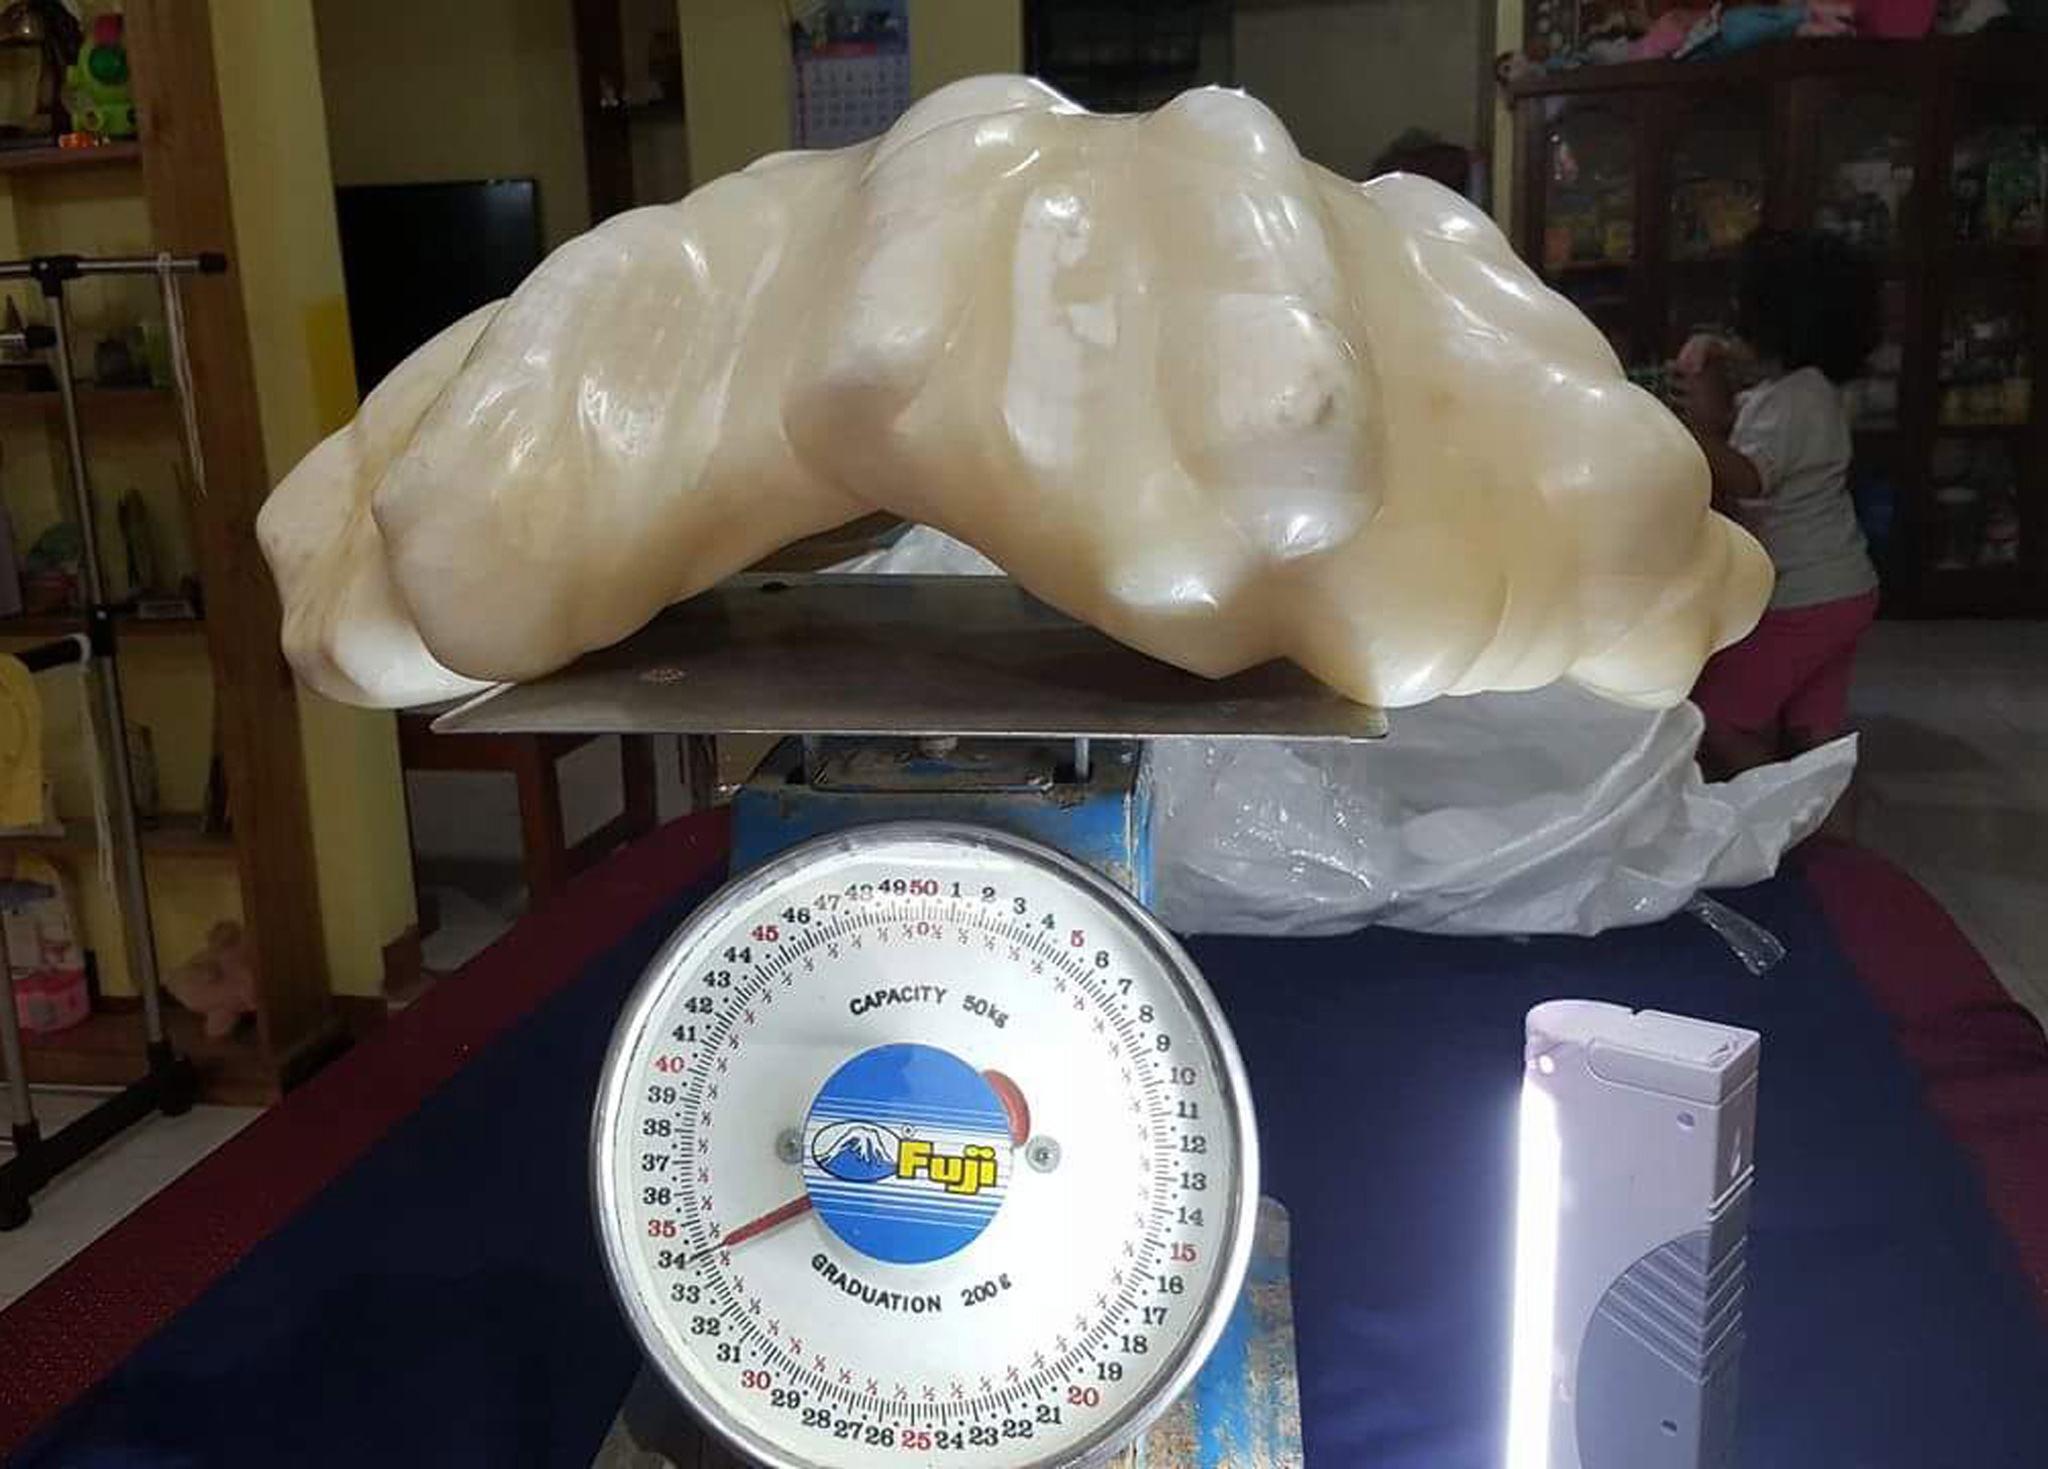 Handout photo provided by the Puerto Princesa Tourism Office released on Aug. 23, 2016 shows a pearl that is awaiting to be certified as the biggest in the world, in Puerto Princesa, Palawan island, Philippines.